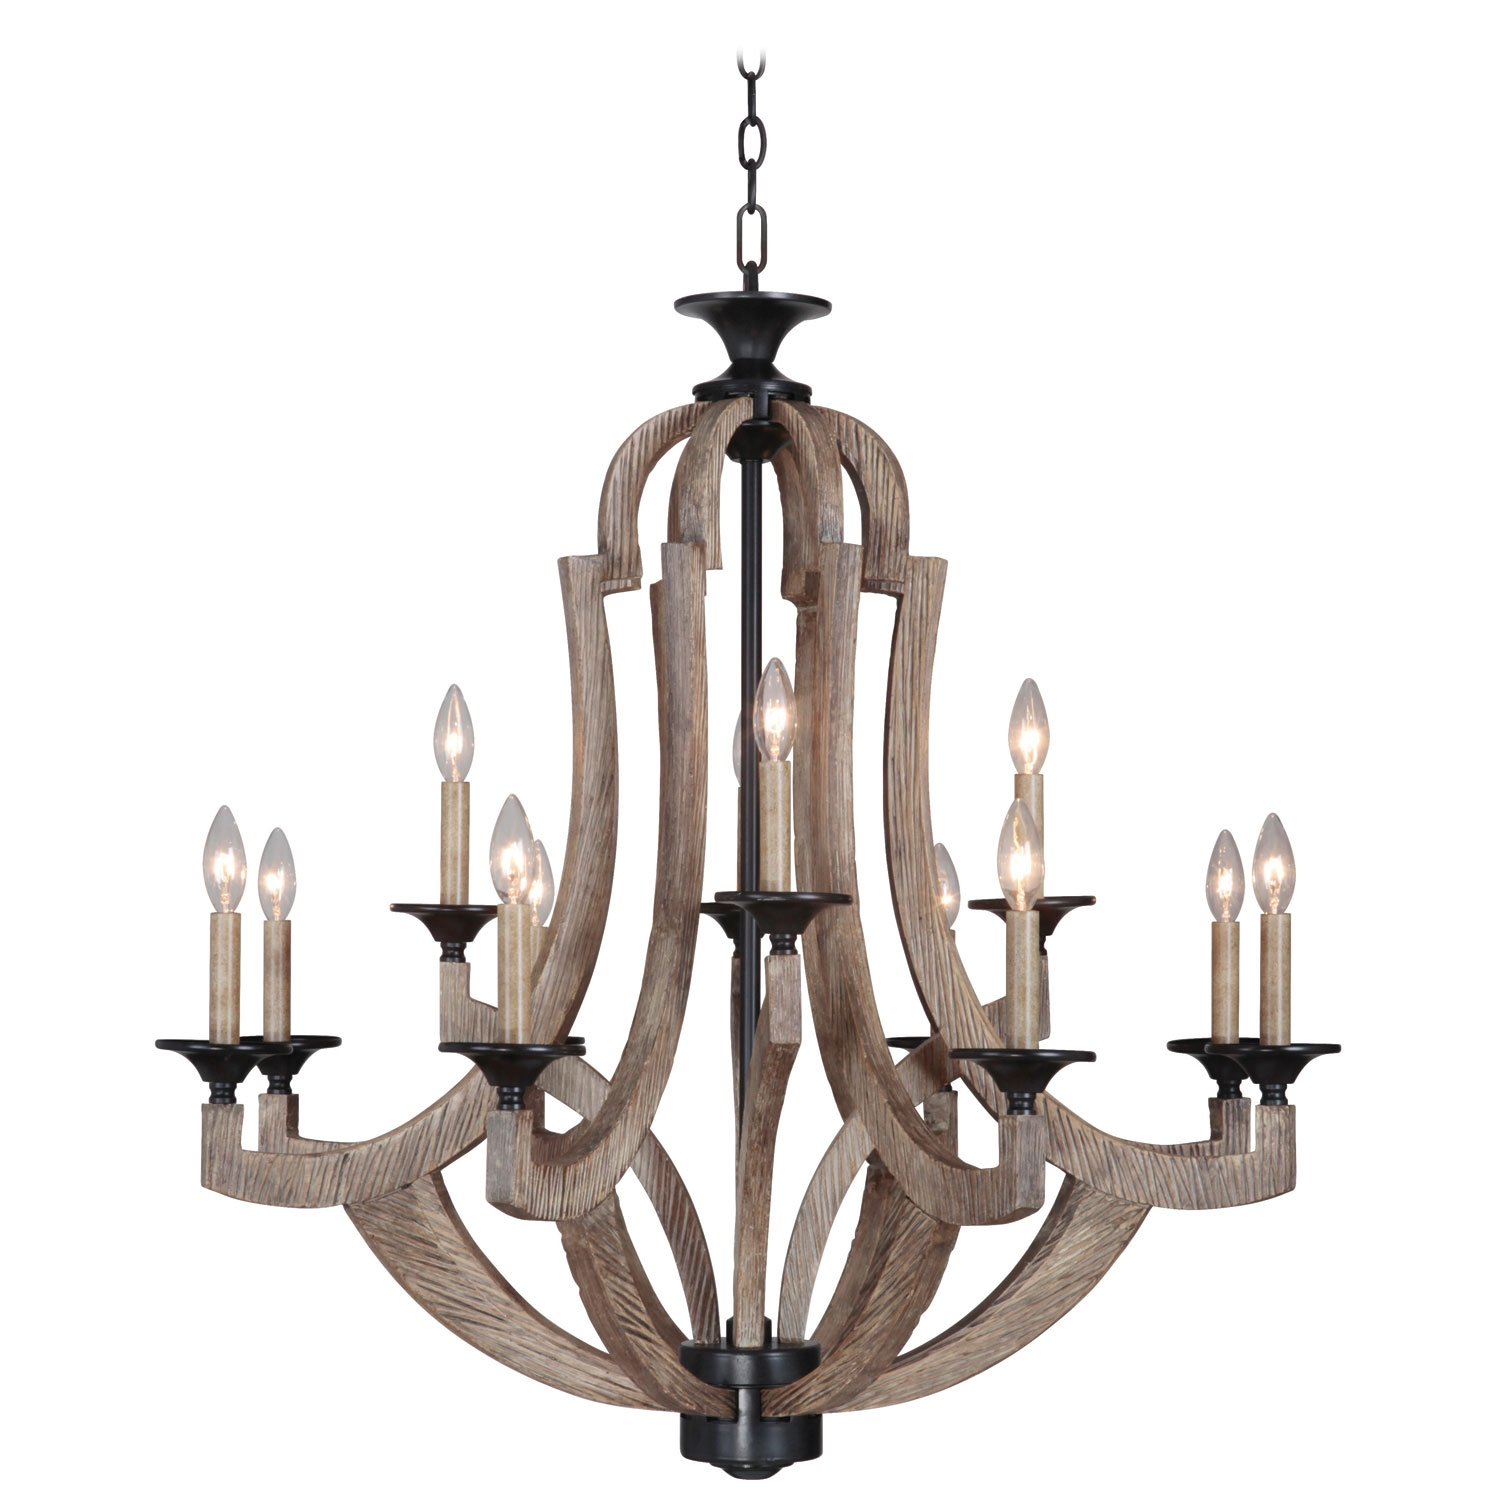 Jeremiah Craftmade Winton Weathered Pine And Bronze 12 Light In Candle Light Chandelier (Image 10 of 15)